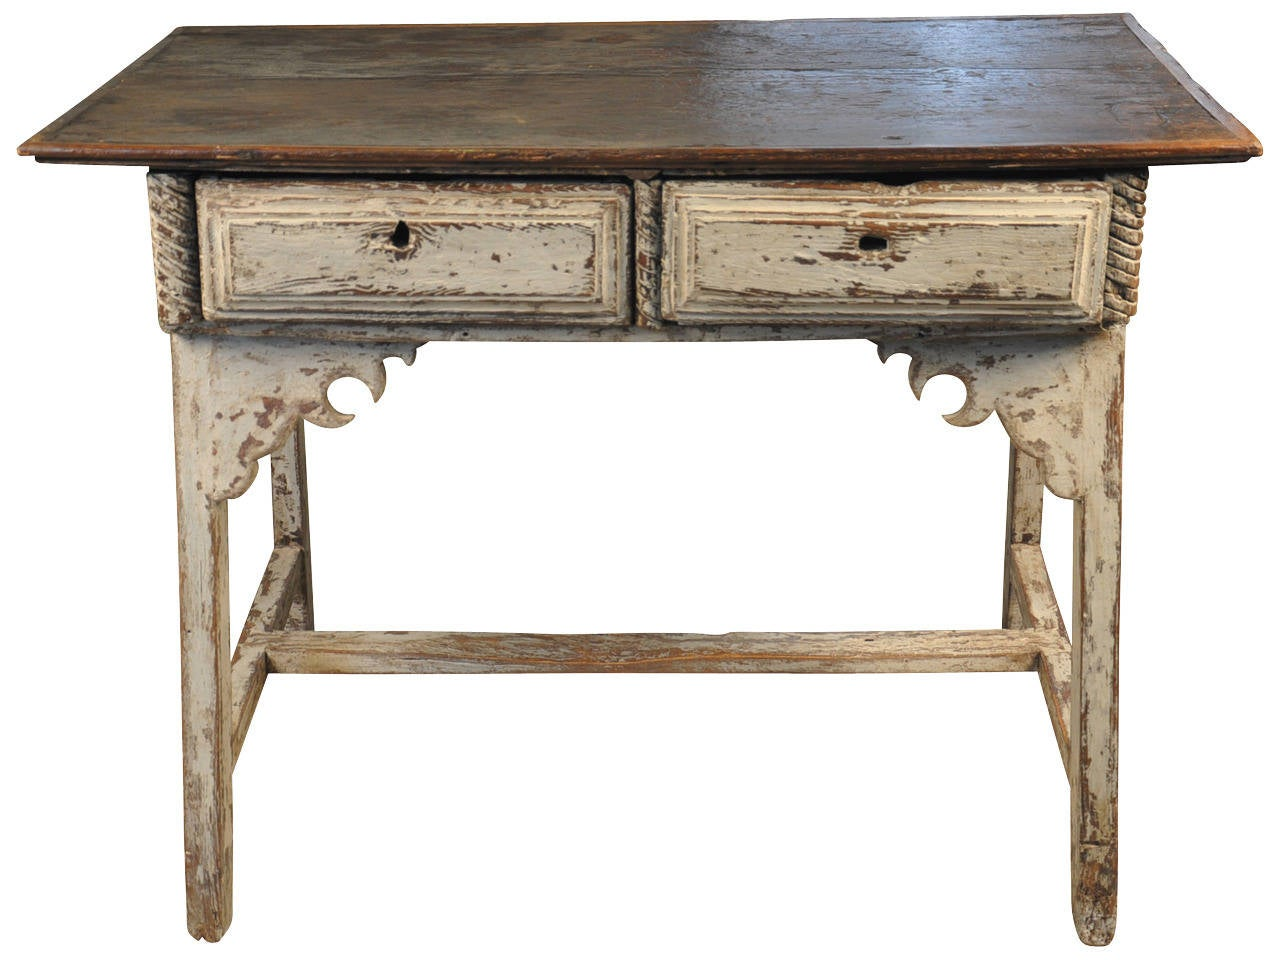 Spanish Primitive Farm Table Work Table In Painted Wood